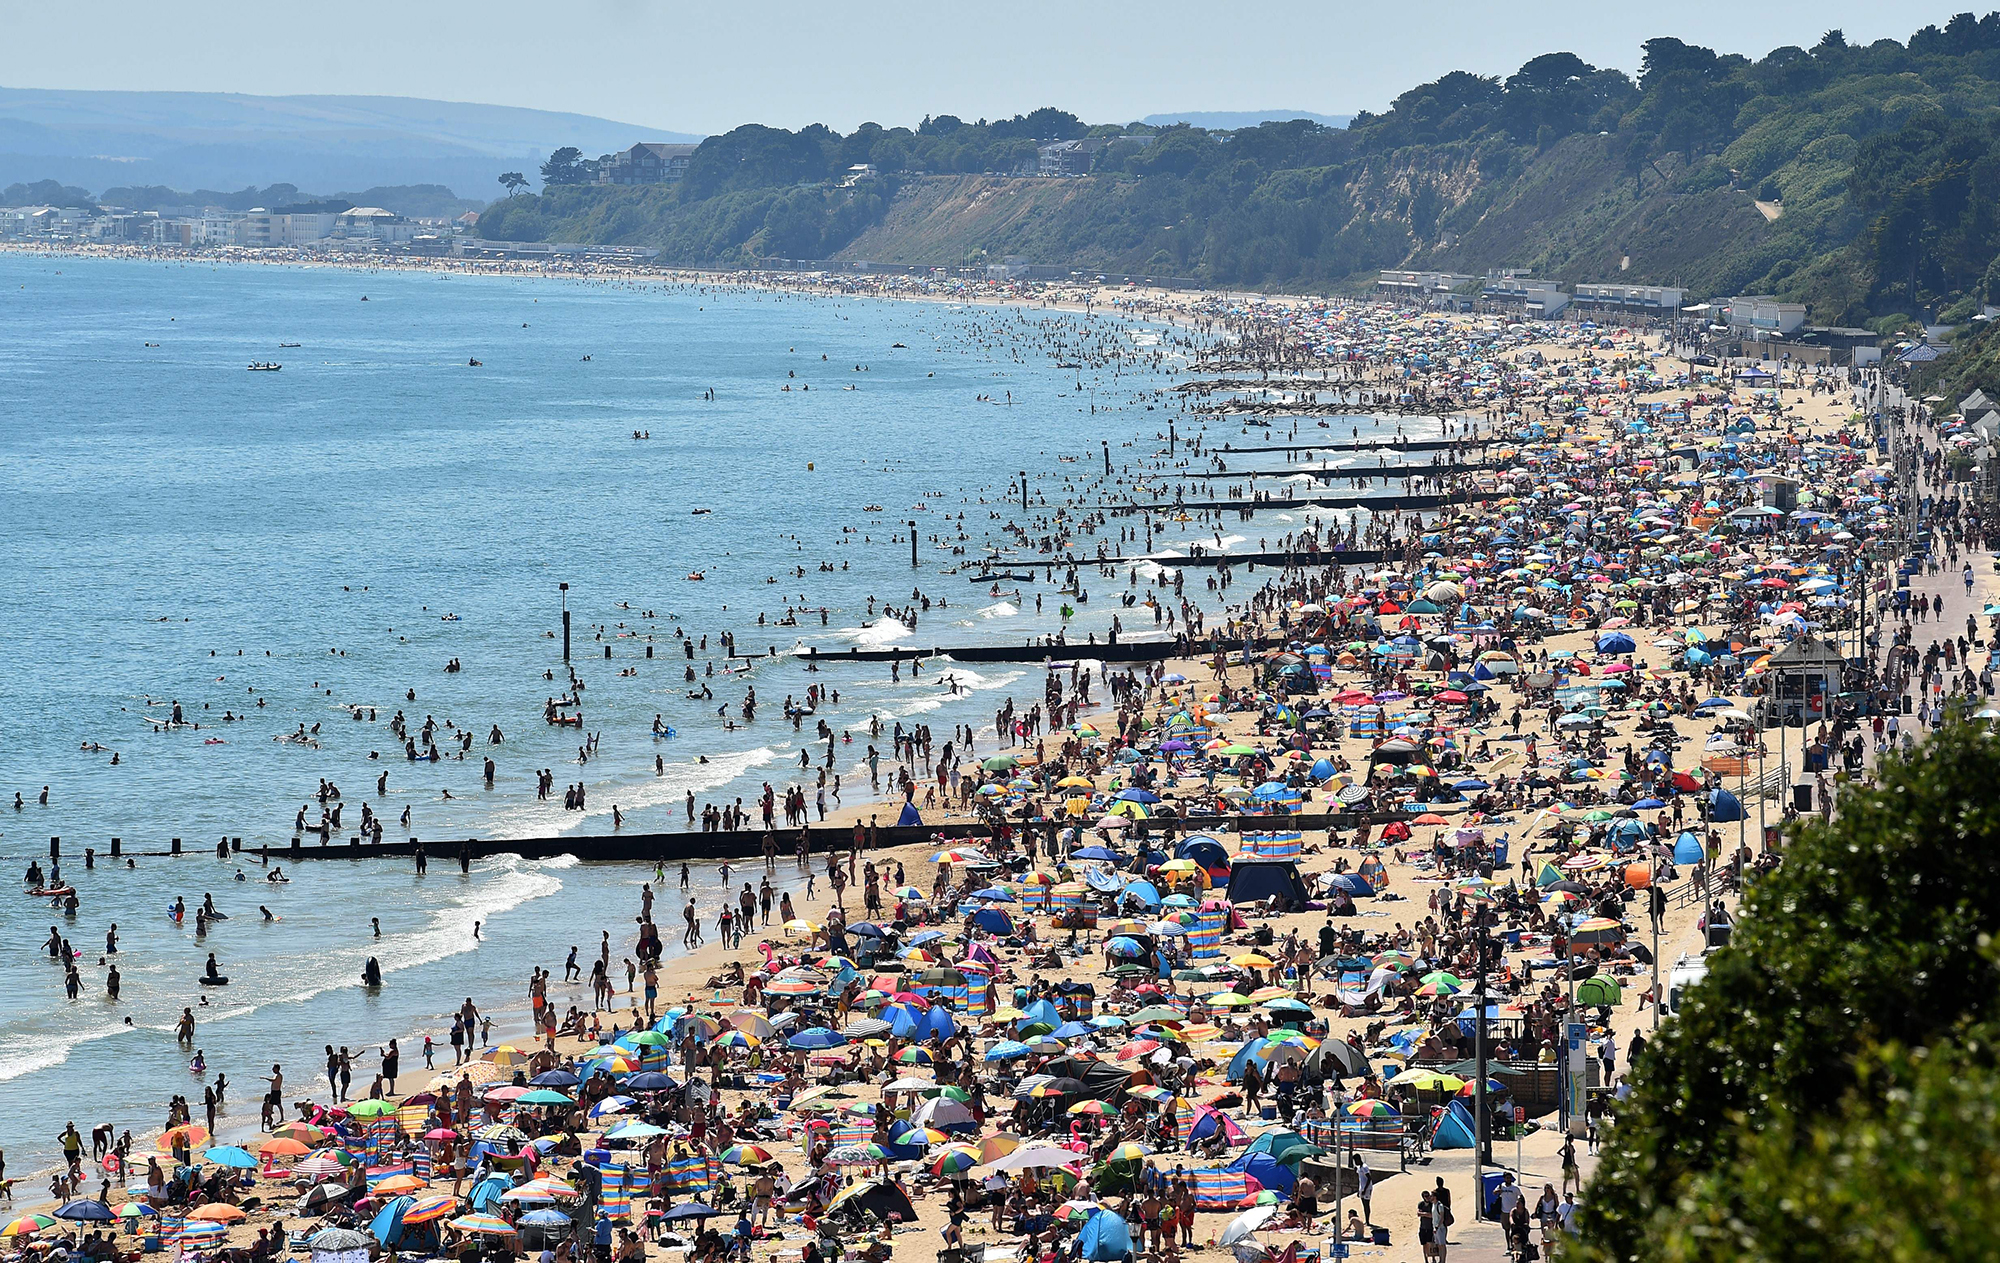 Crowds on the beach in Bournemouth, southern England, on June 25, 2020.